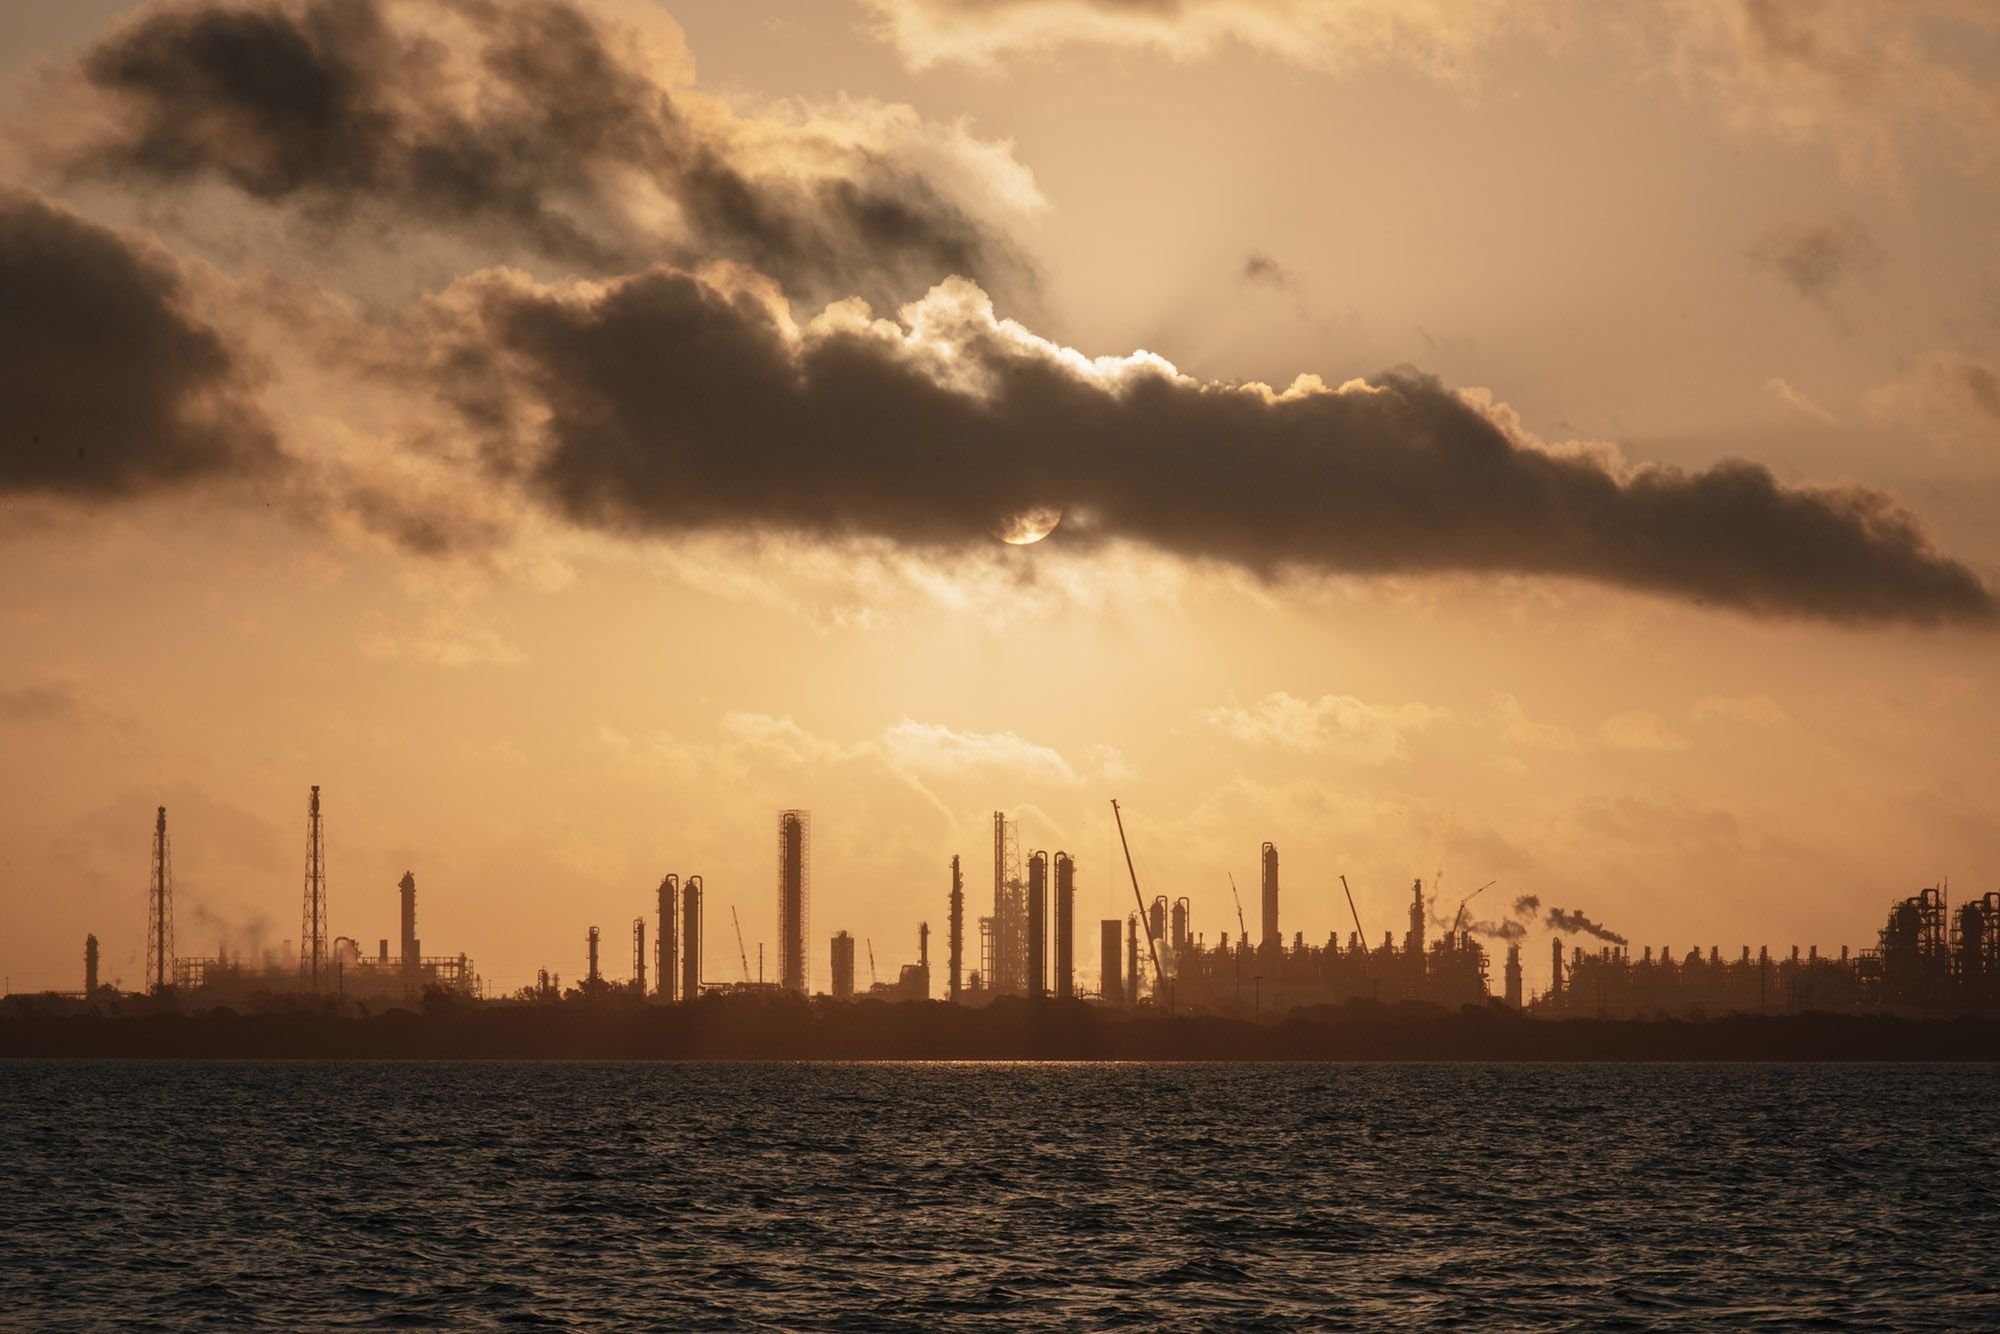 A growing toxic threat — made worse by climate change